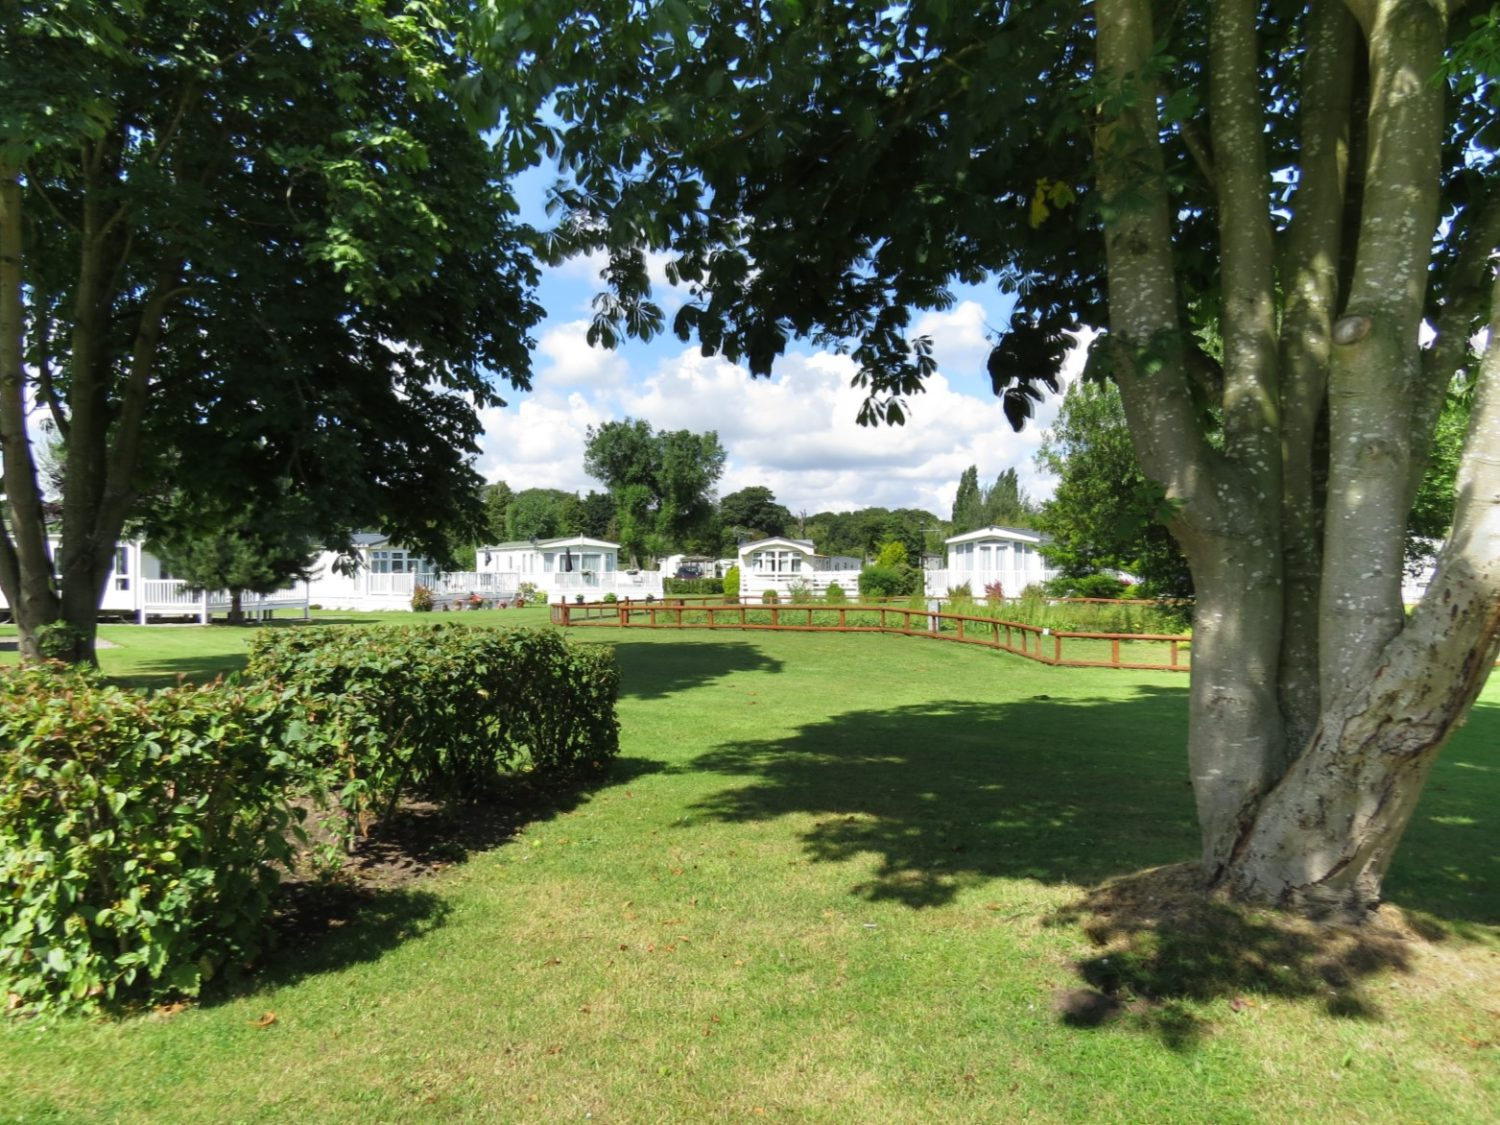 Fantastic gardens are well kept at Fir Trees Caravan Park